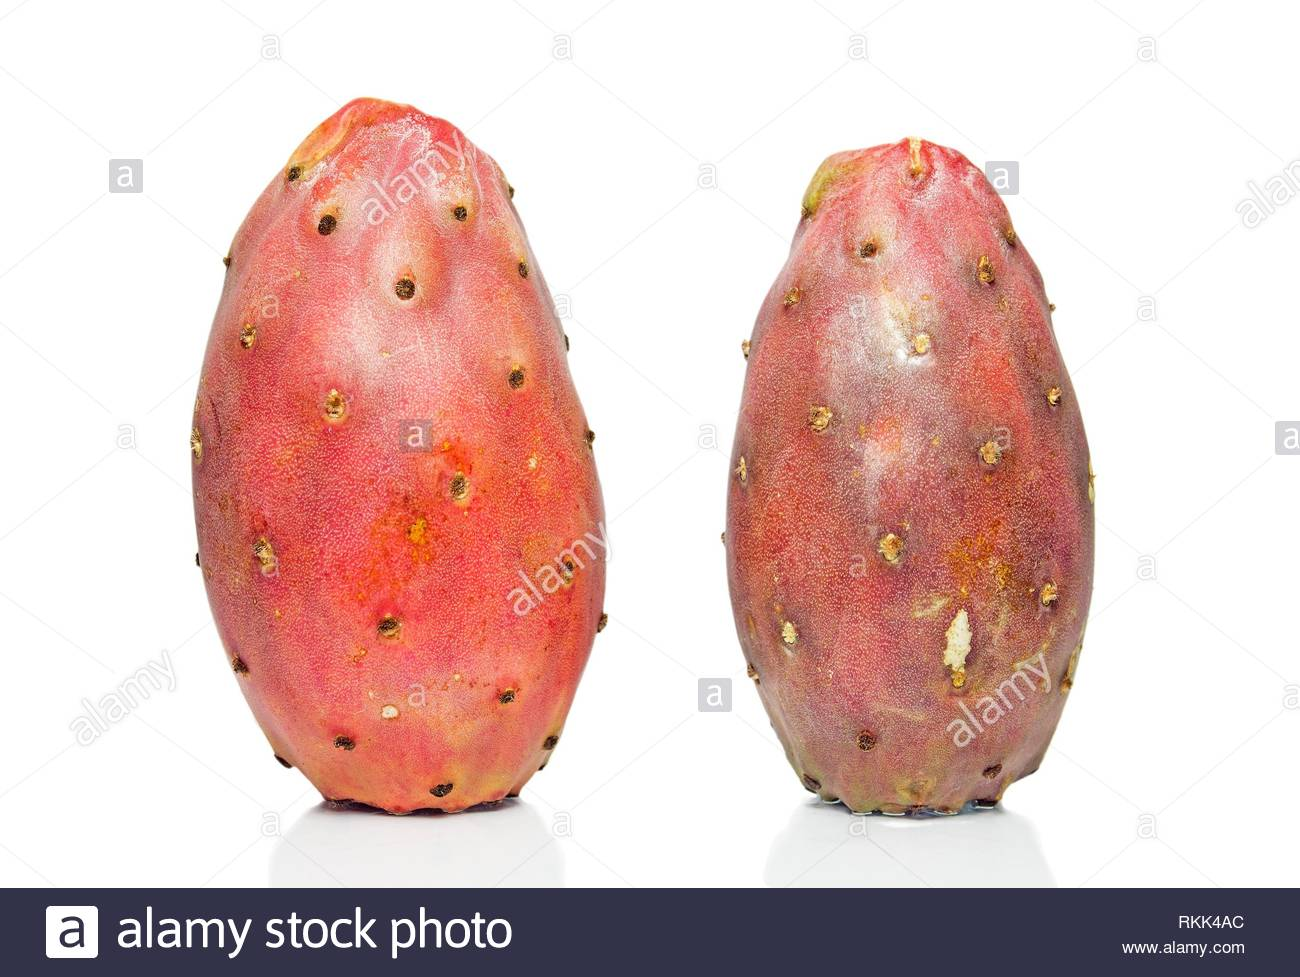 cactus fruit on a white background. - Stock Image